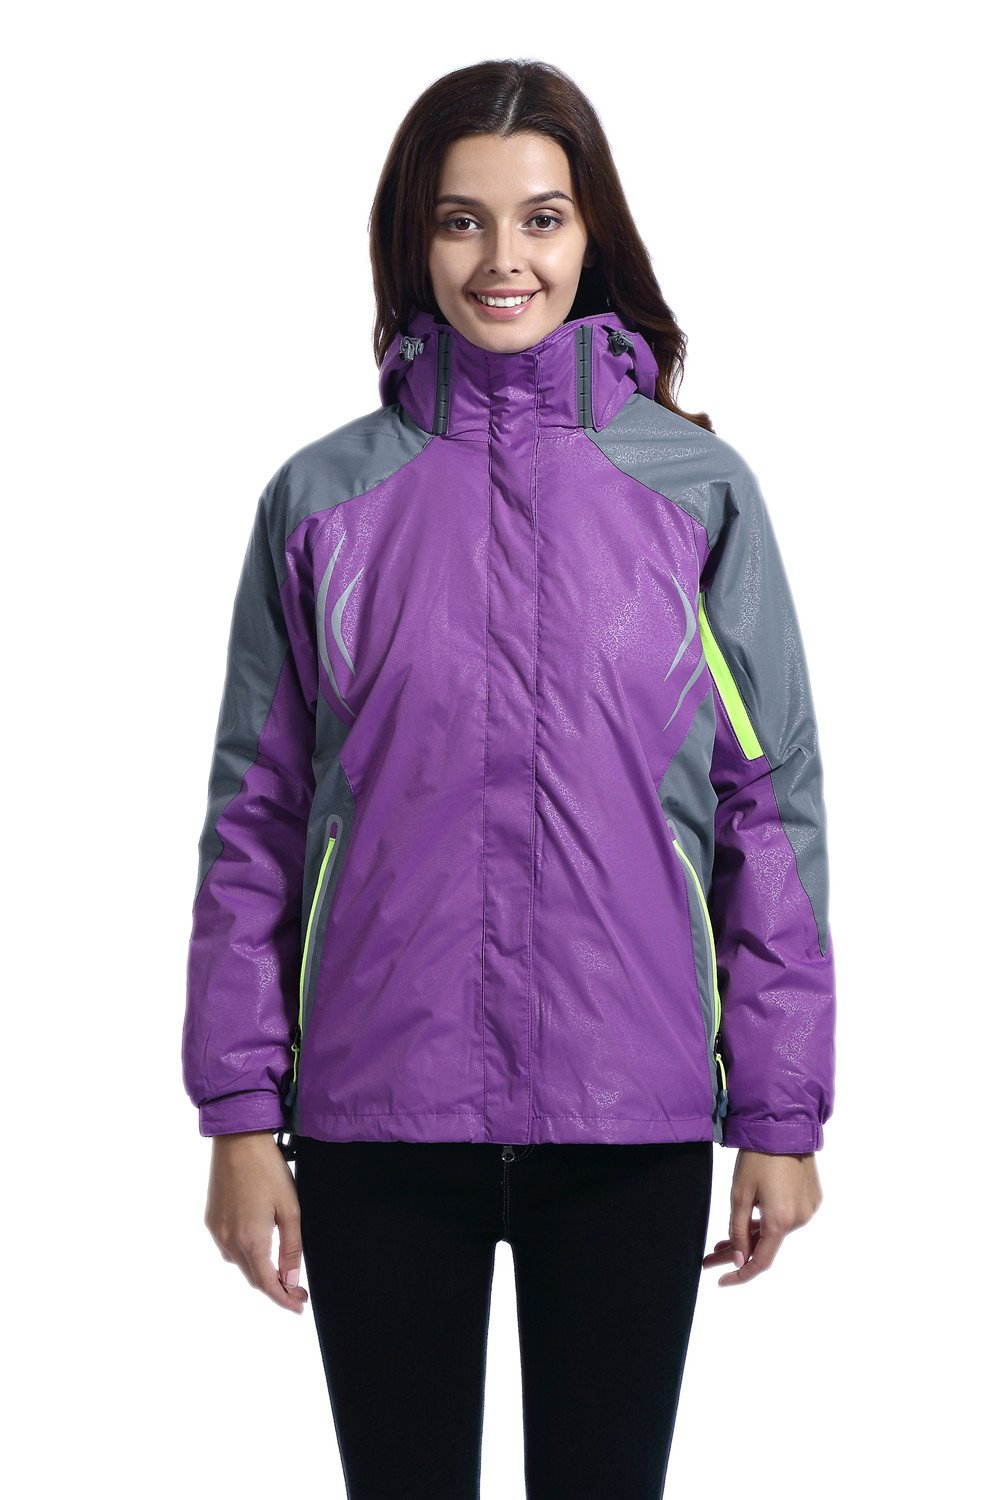 Leajoy Women's Hooded Windproof Rain Jacket Outerwear Hiking Rain Coat Windbreaker